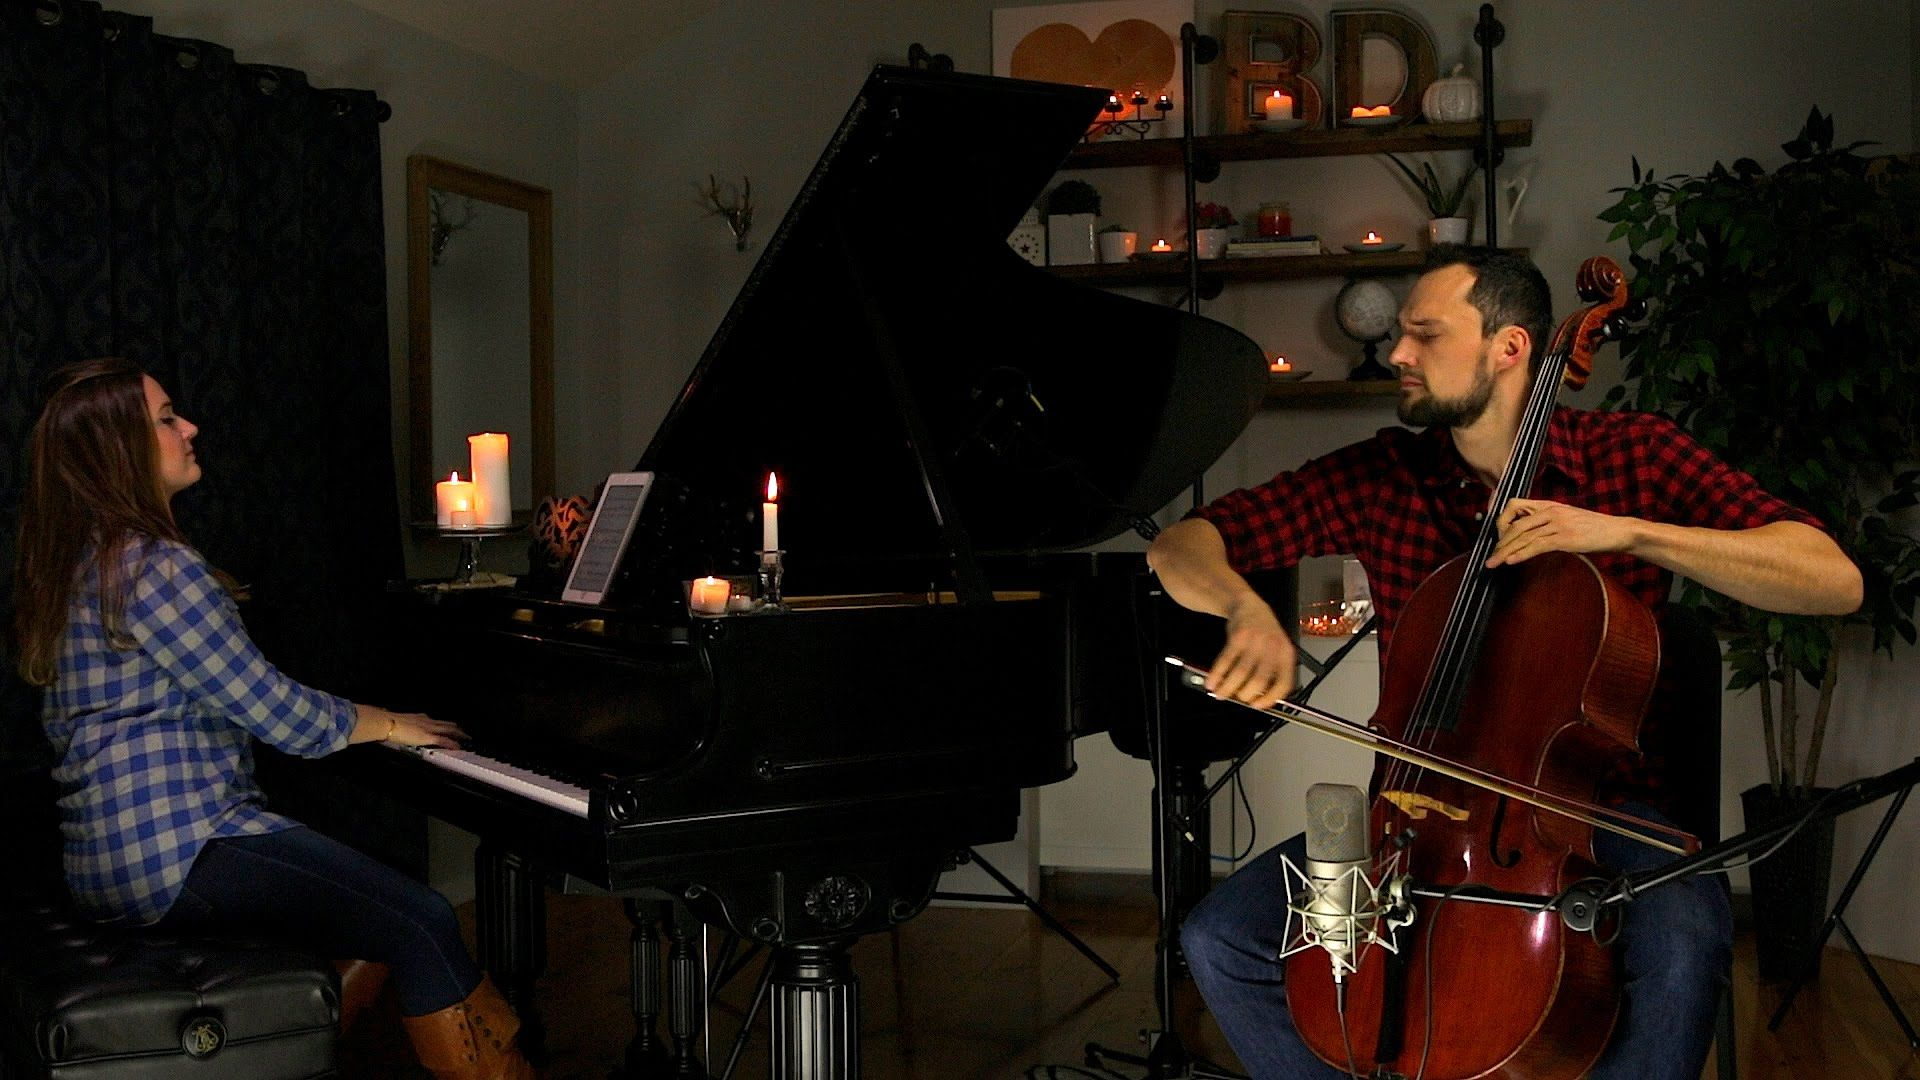 Sia - Chandelier (Piano/Cello Cover) - Brooklyn Duo (that melody ...